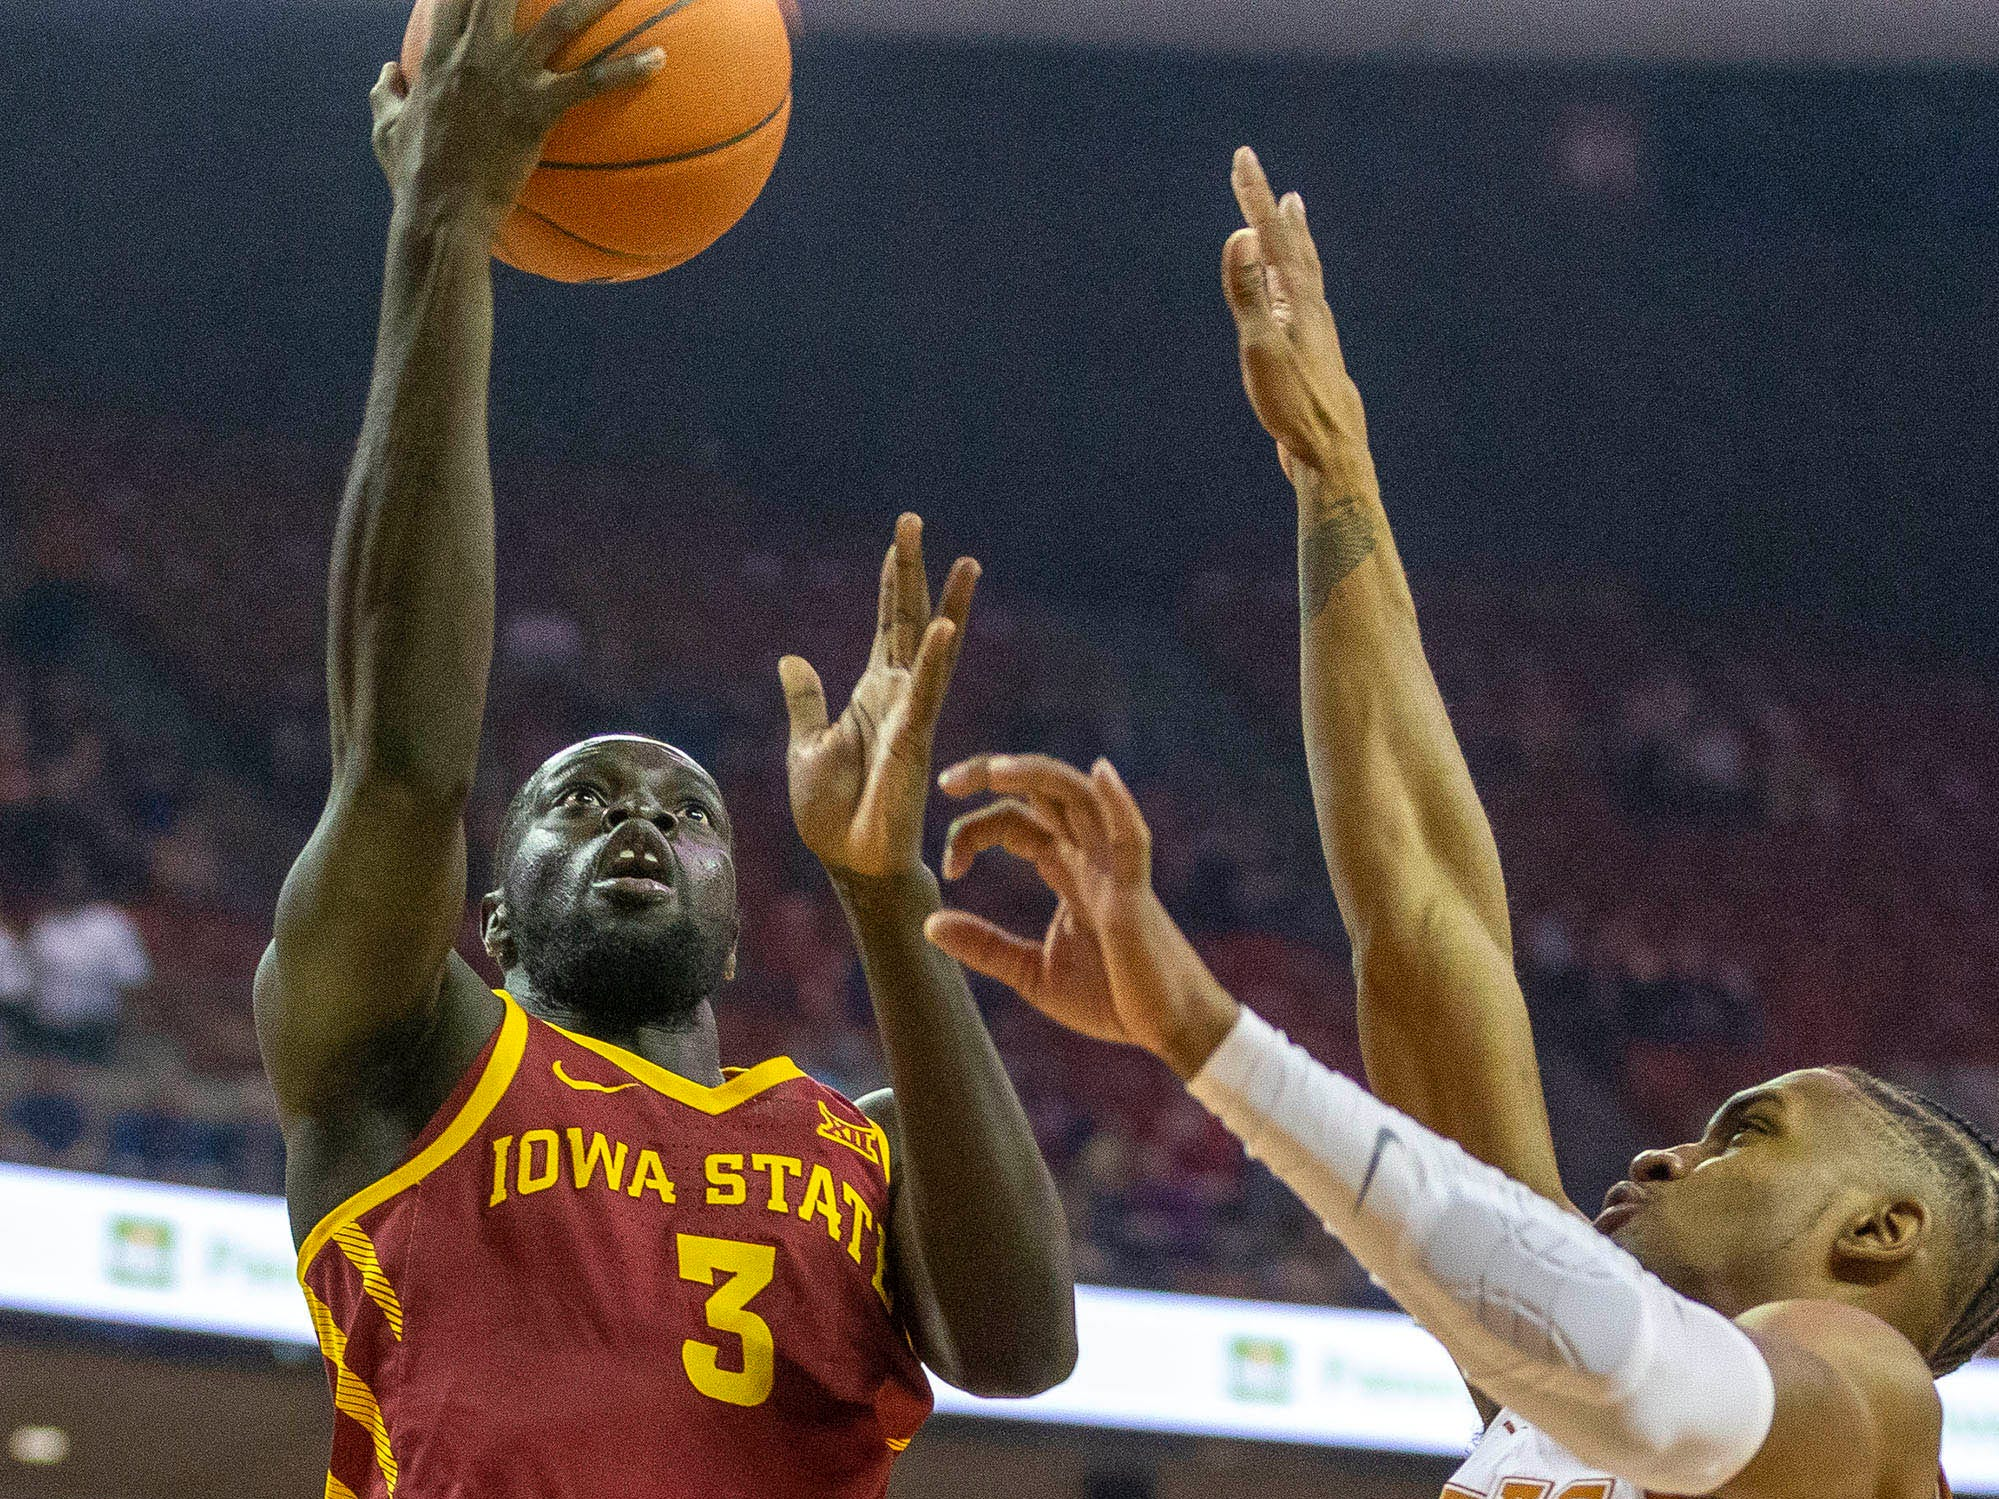 Mar 2, 2019; Austin, TX, USA; Iowa State Cyclones guard Marial Shayok (3) goes to the basket over Texas Longhorns guard Jase Febres (13) in the first half at Frank Erwin Center.